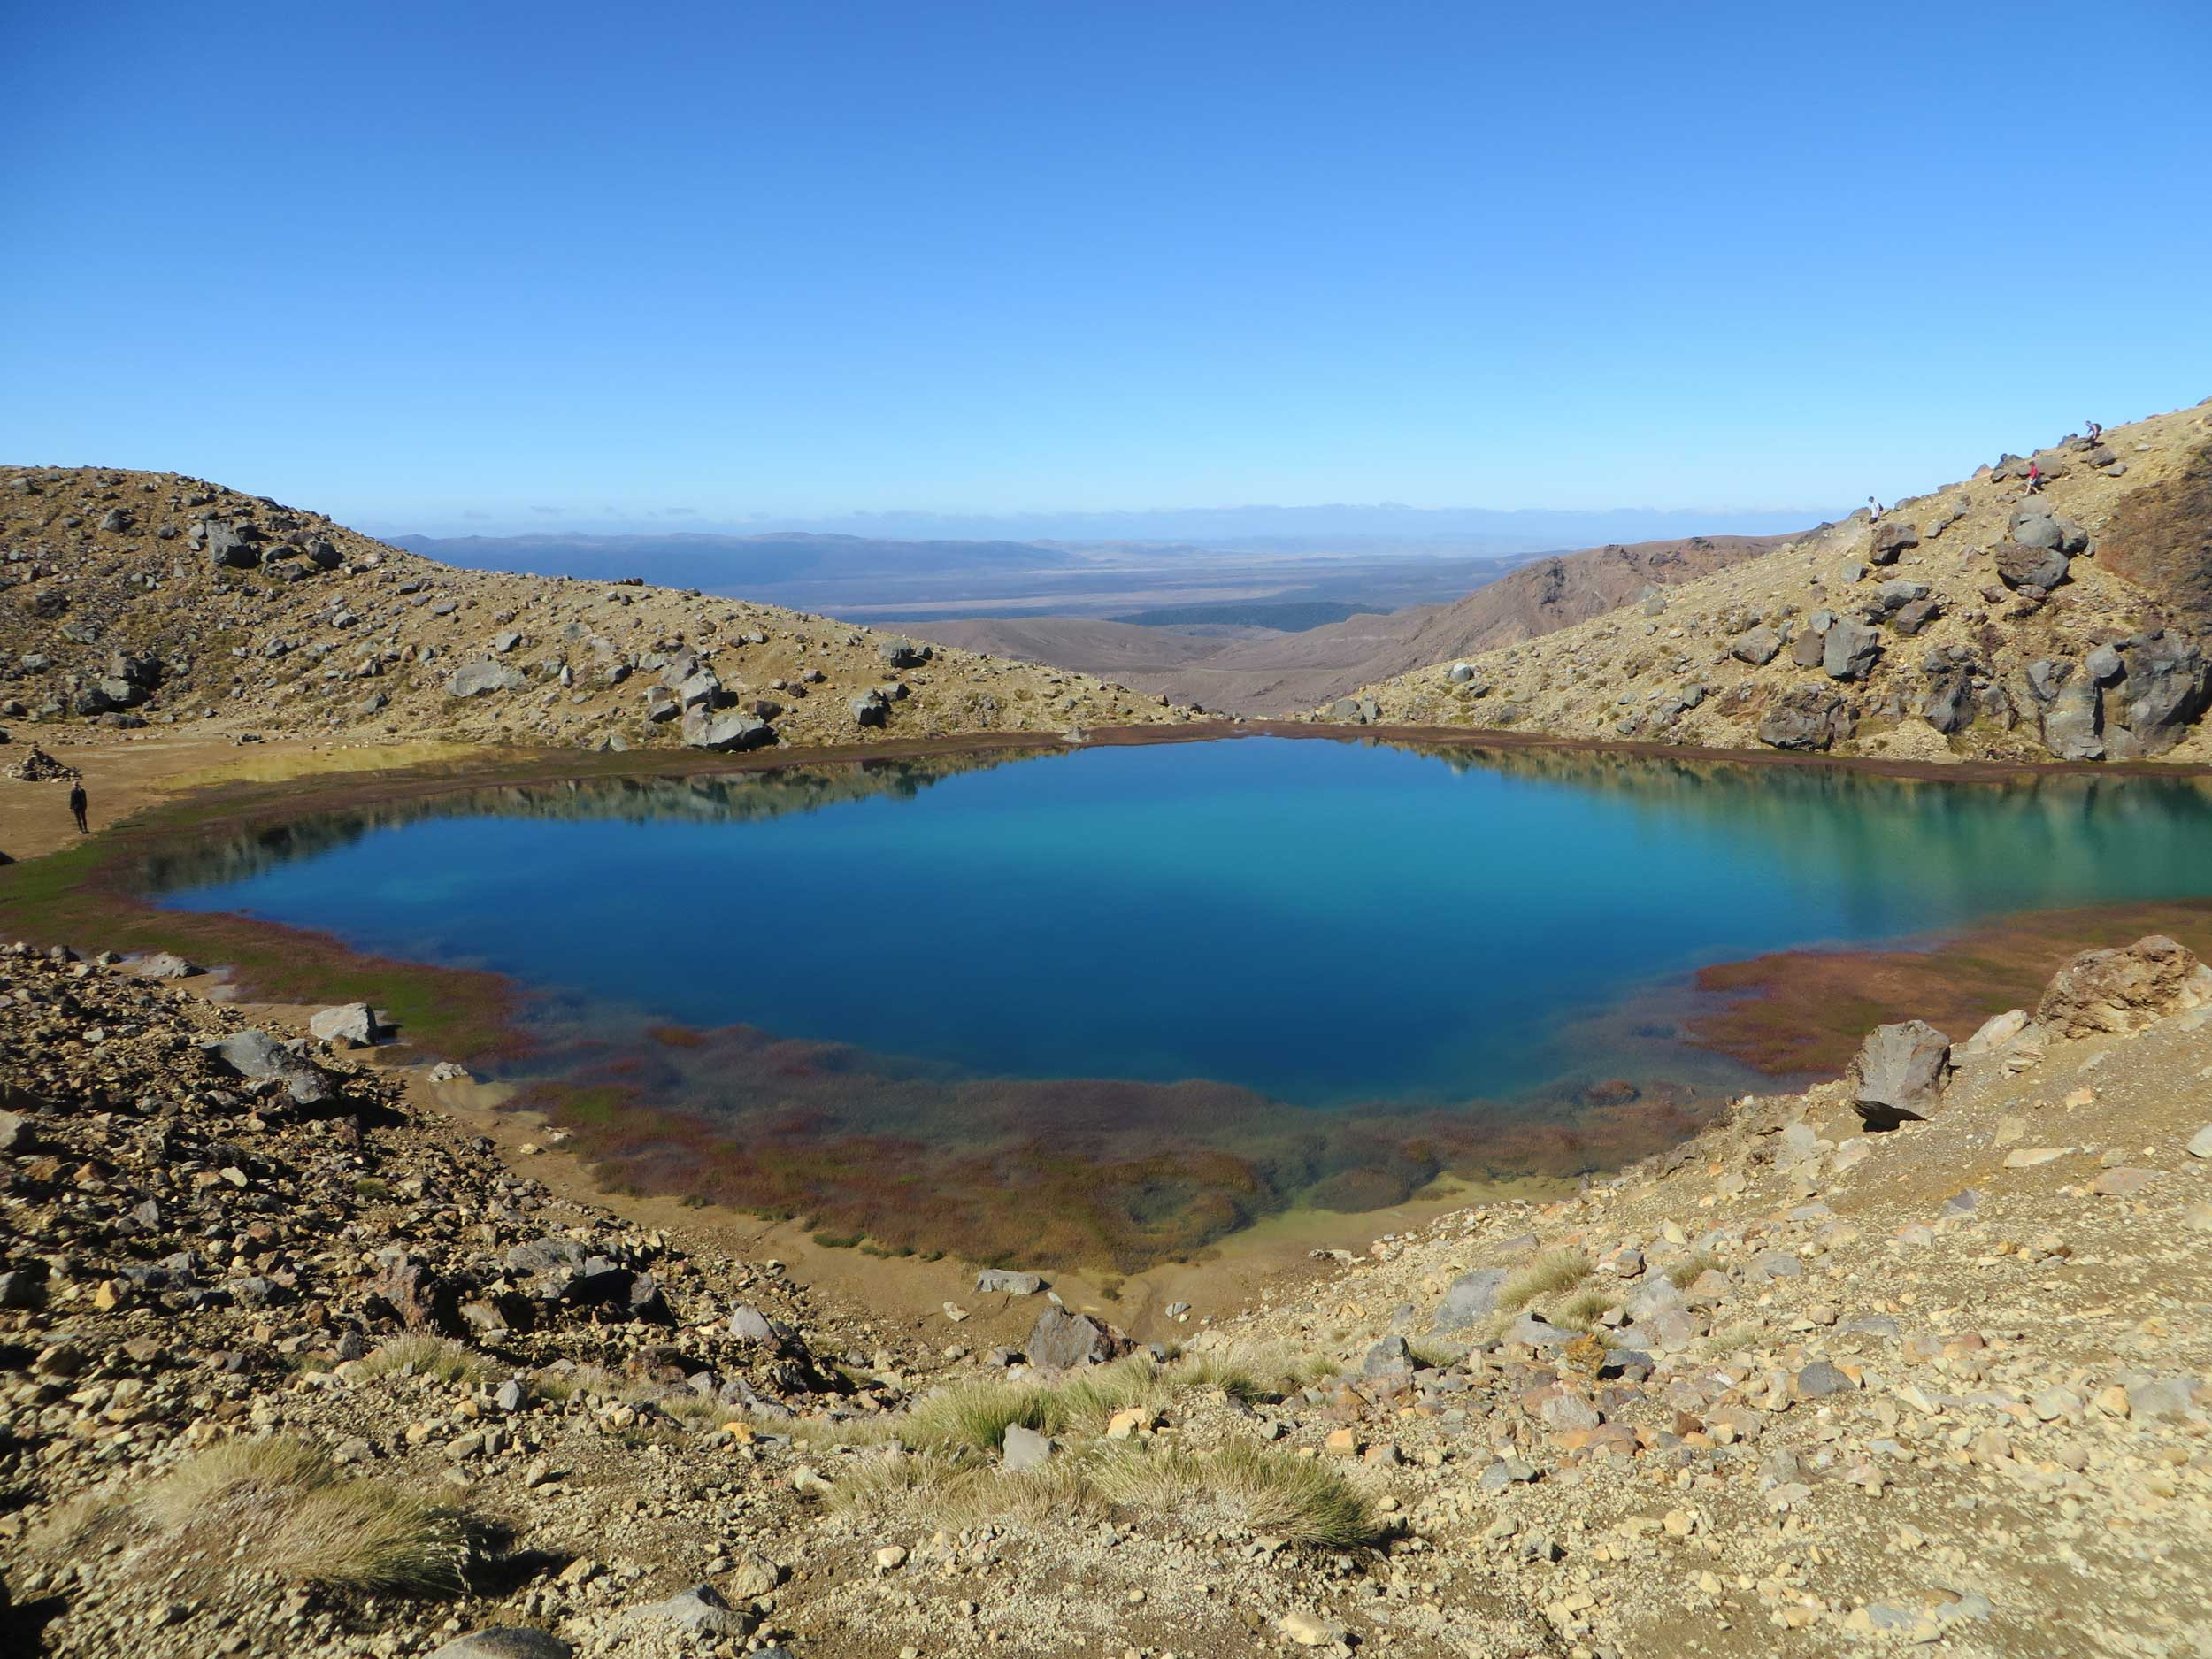 A deep blue lake on the Tongariro Crossing, New Zealand.